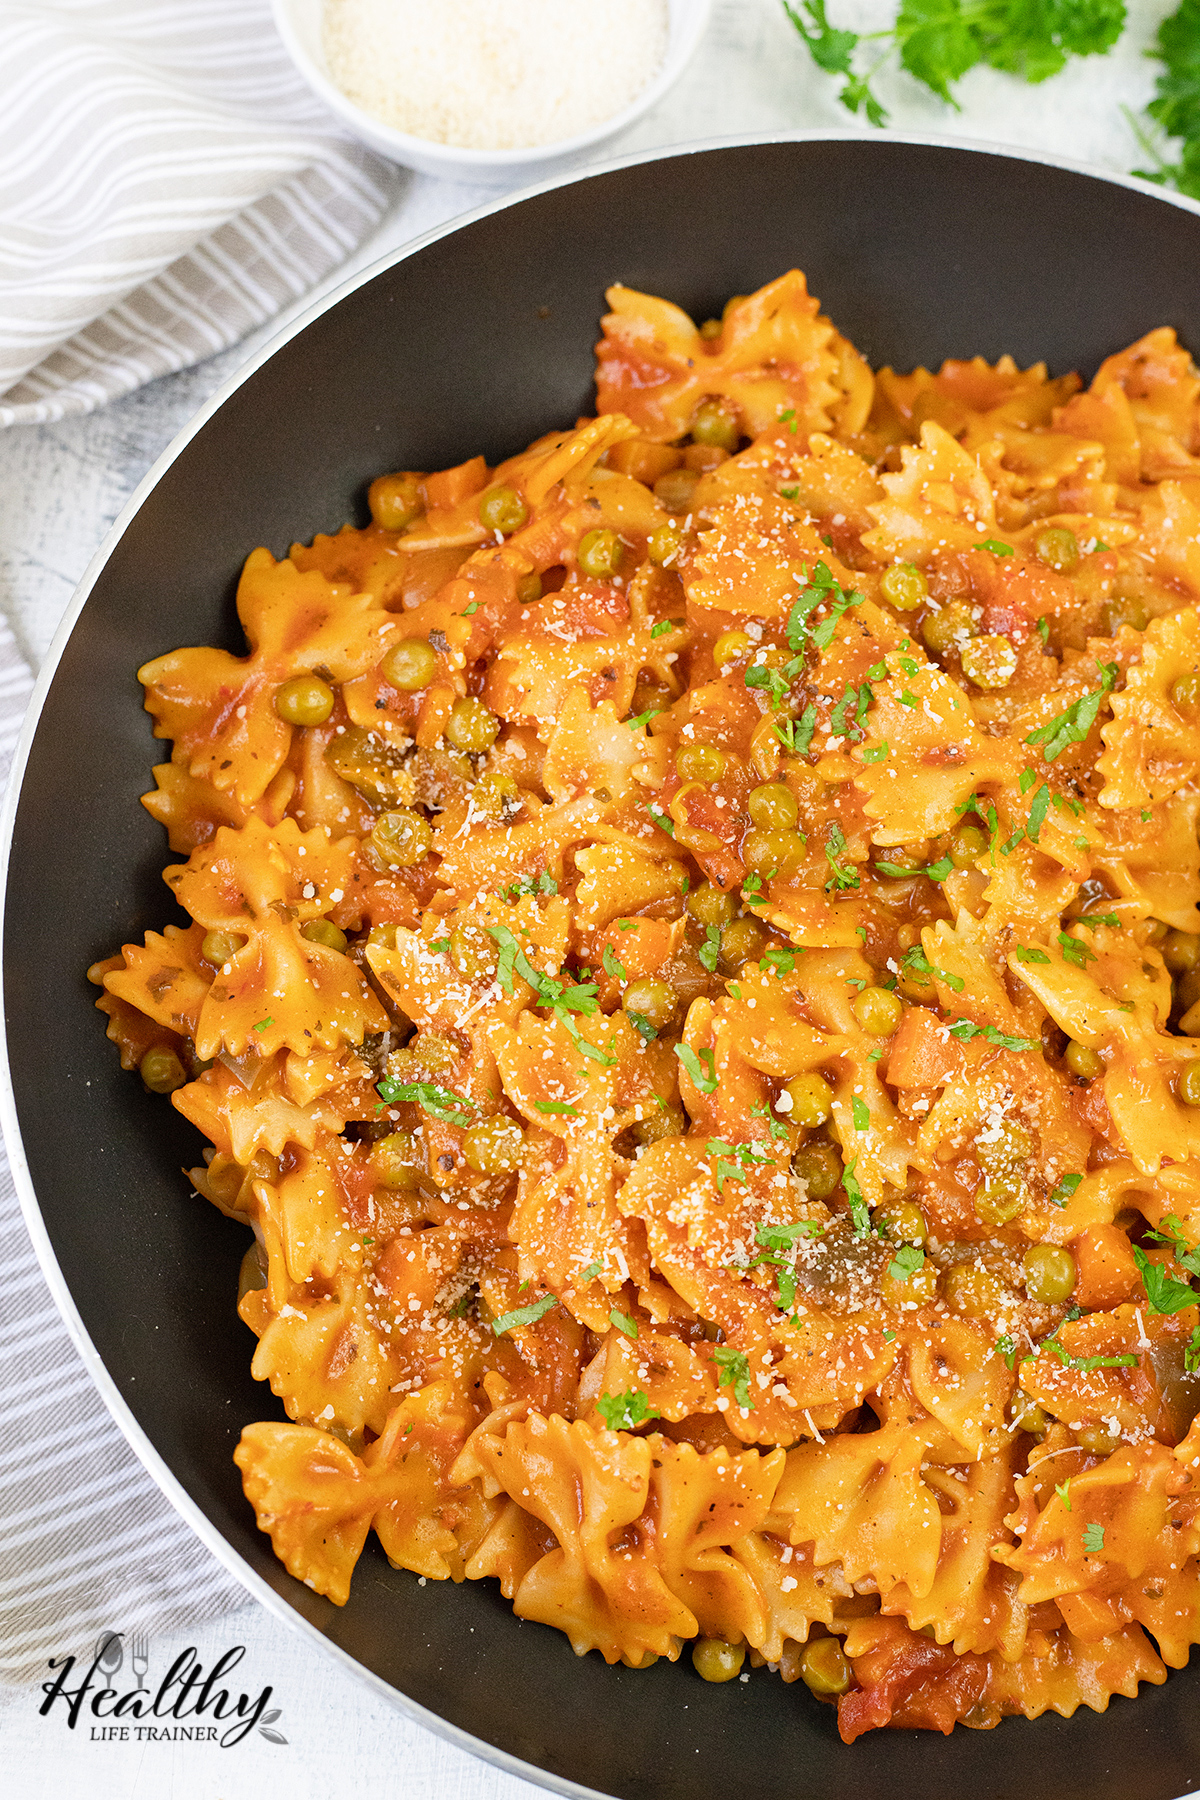 Pasta with Veggies in a skillet